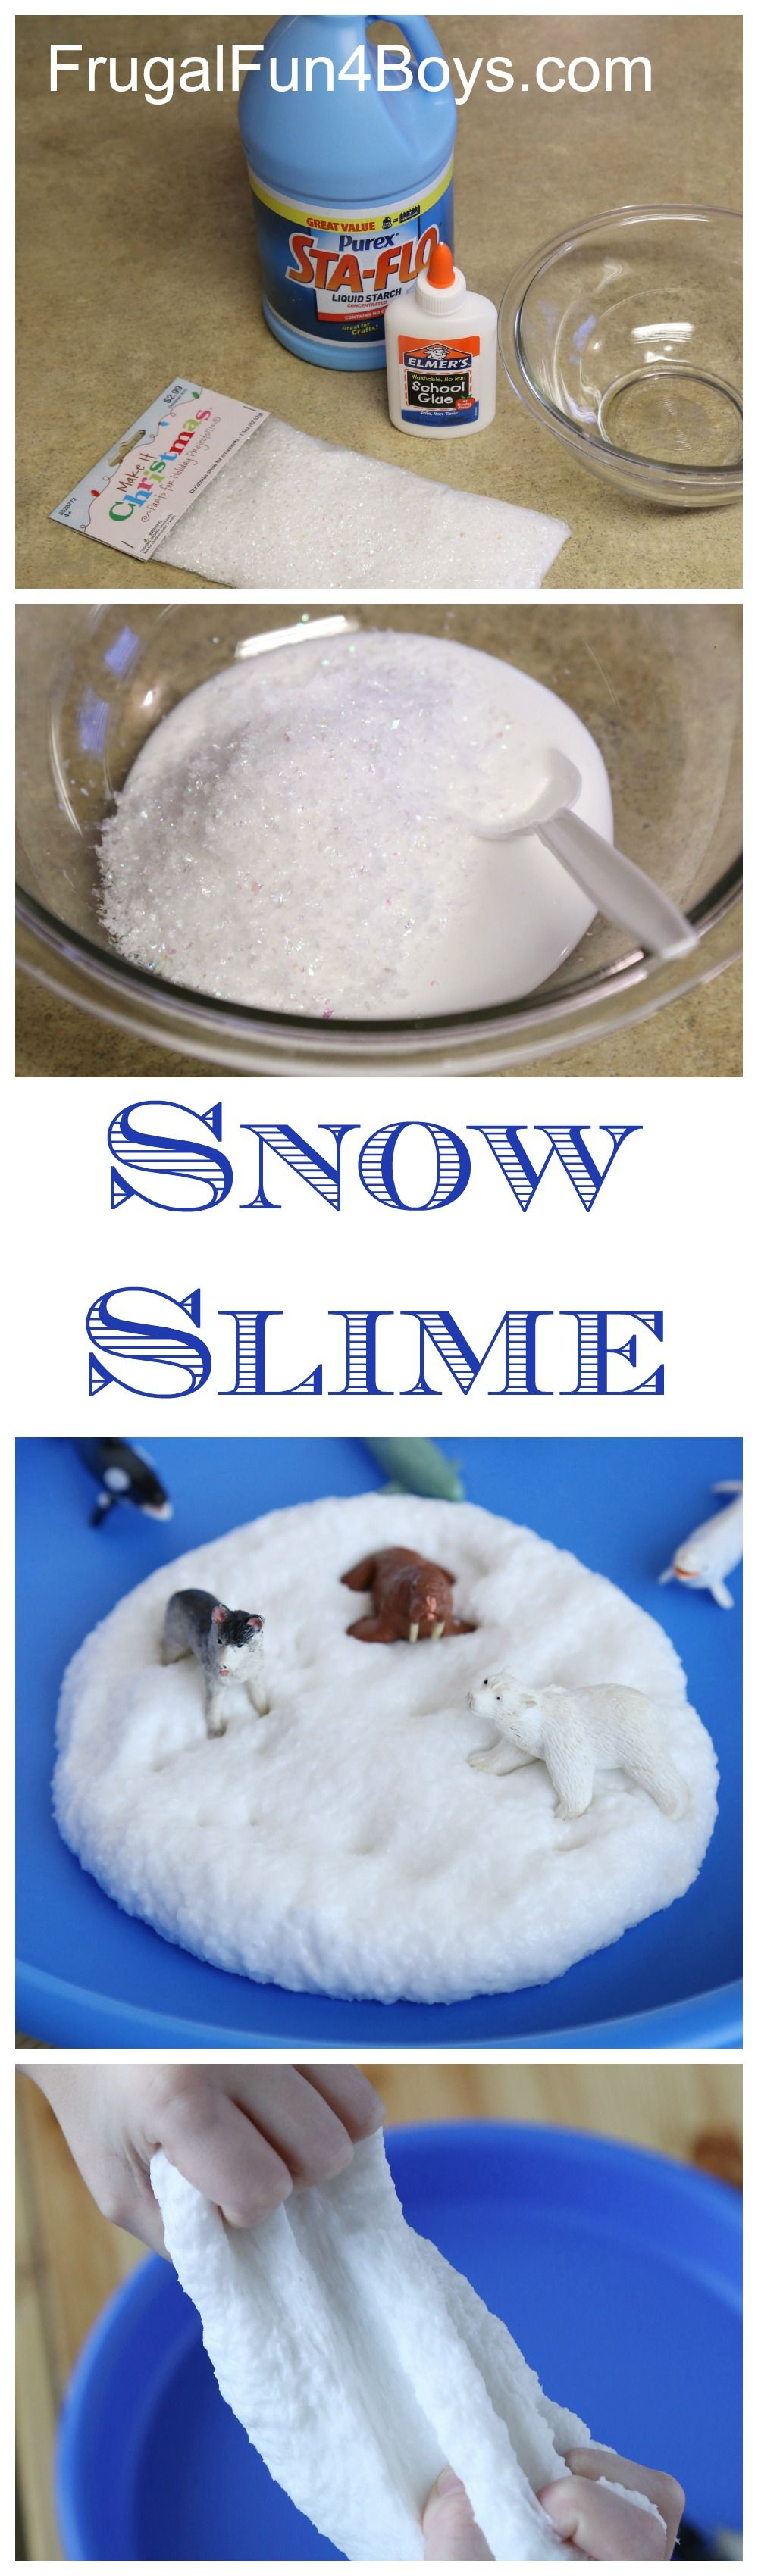 How to make snow slime kindergarten teaching ideas pinterest how to make snow slime ccuart Image collections